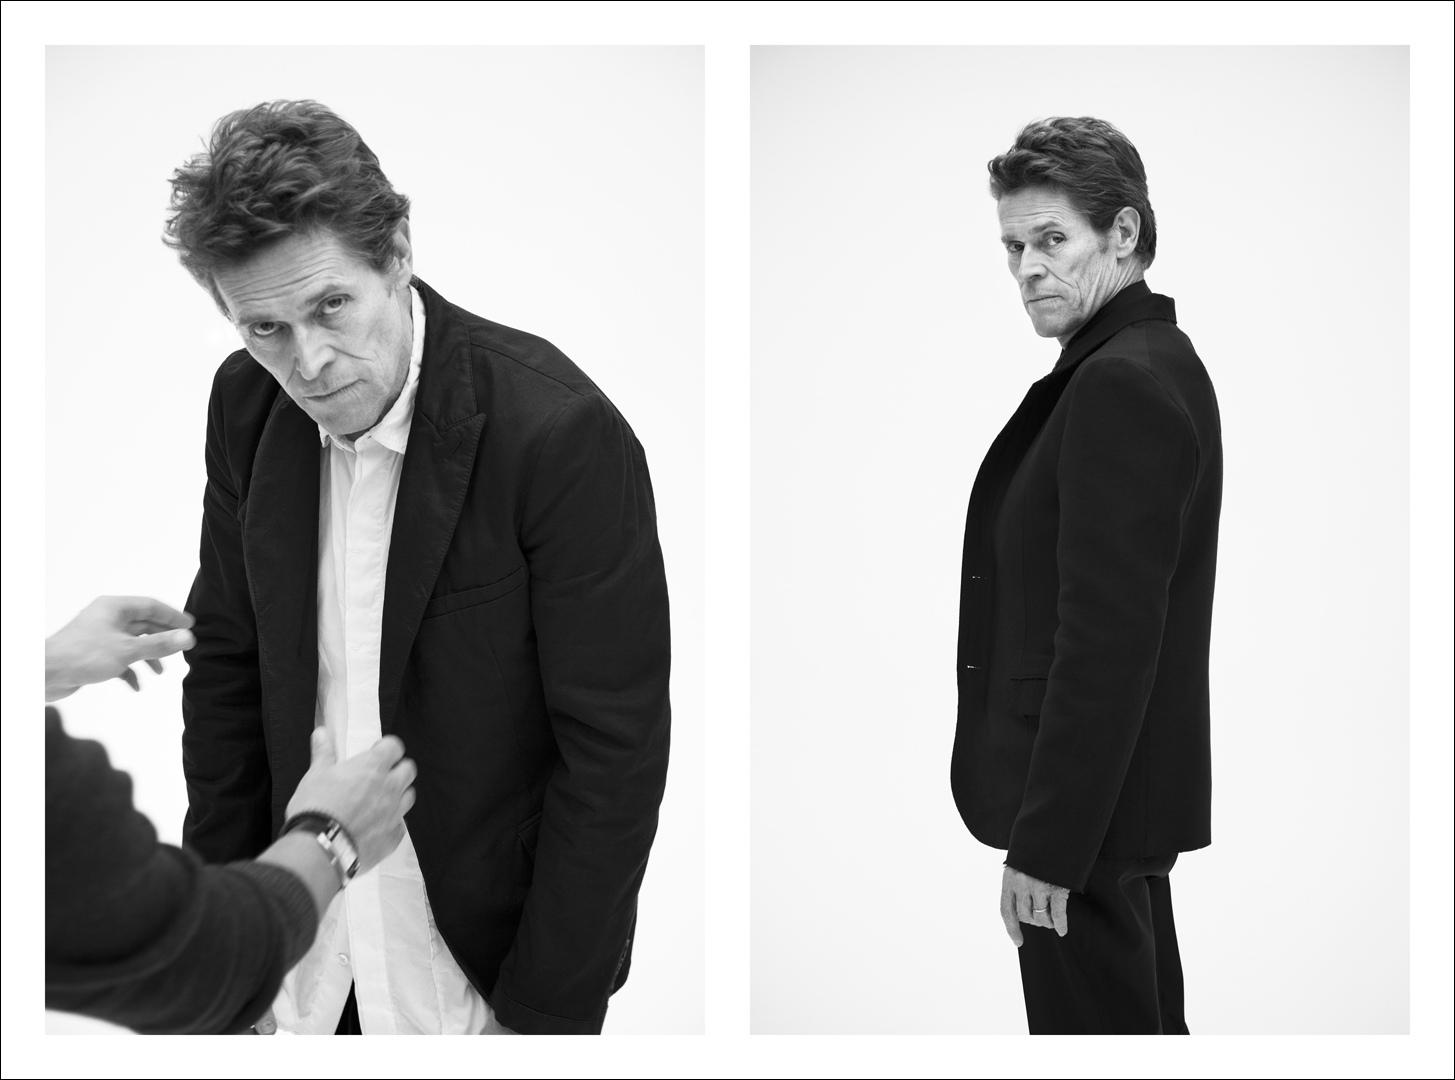 04_TIM_BARBER_WILLEM_DAFOE.jpg